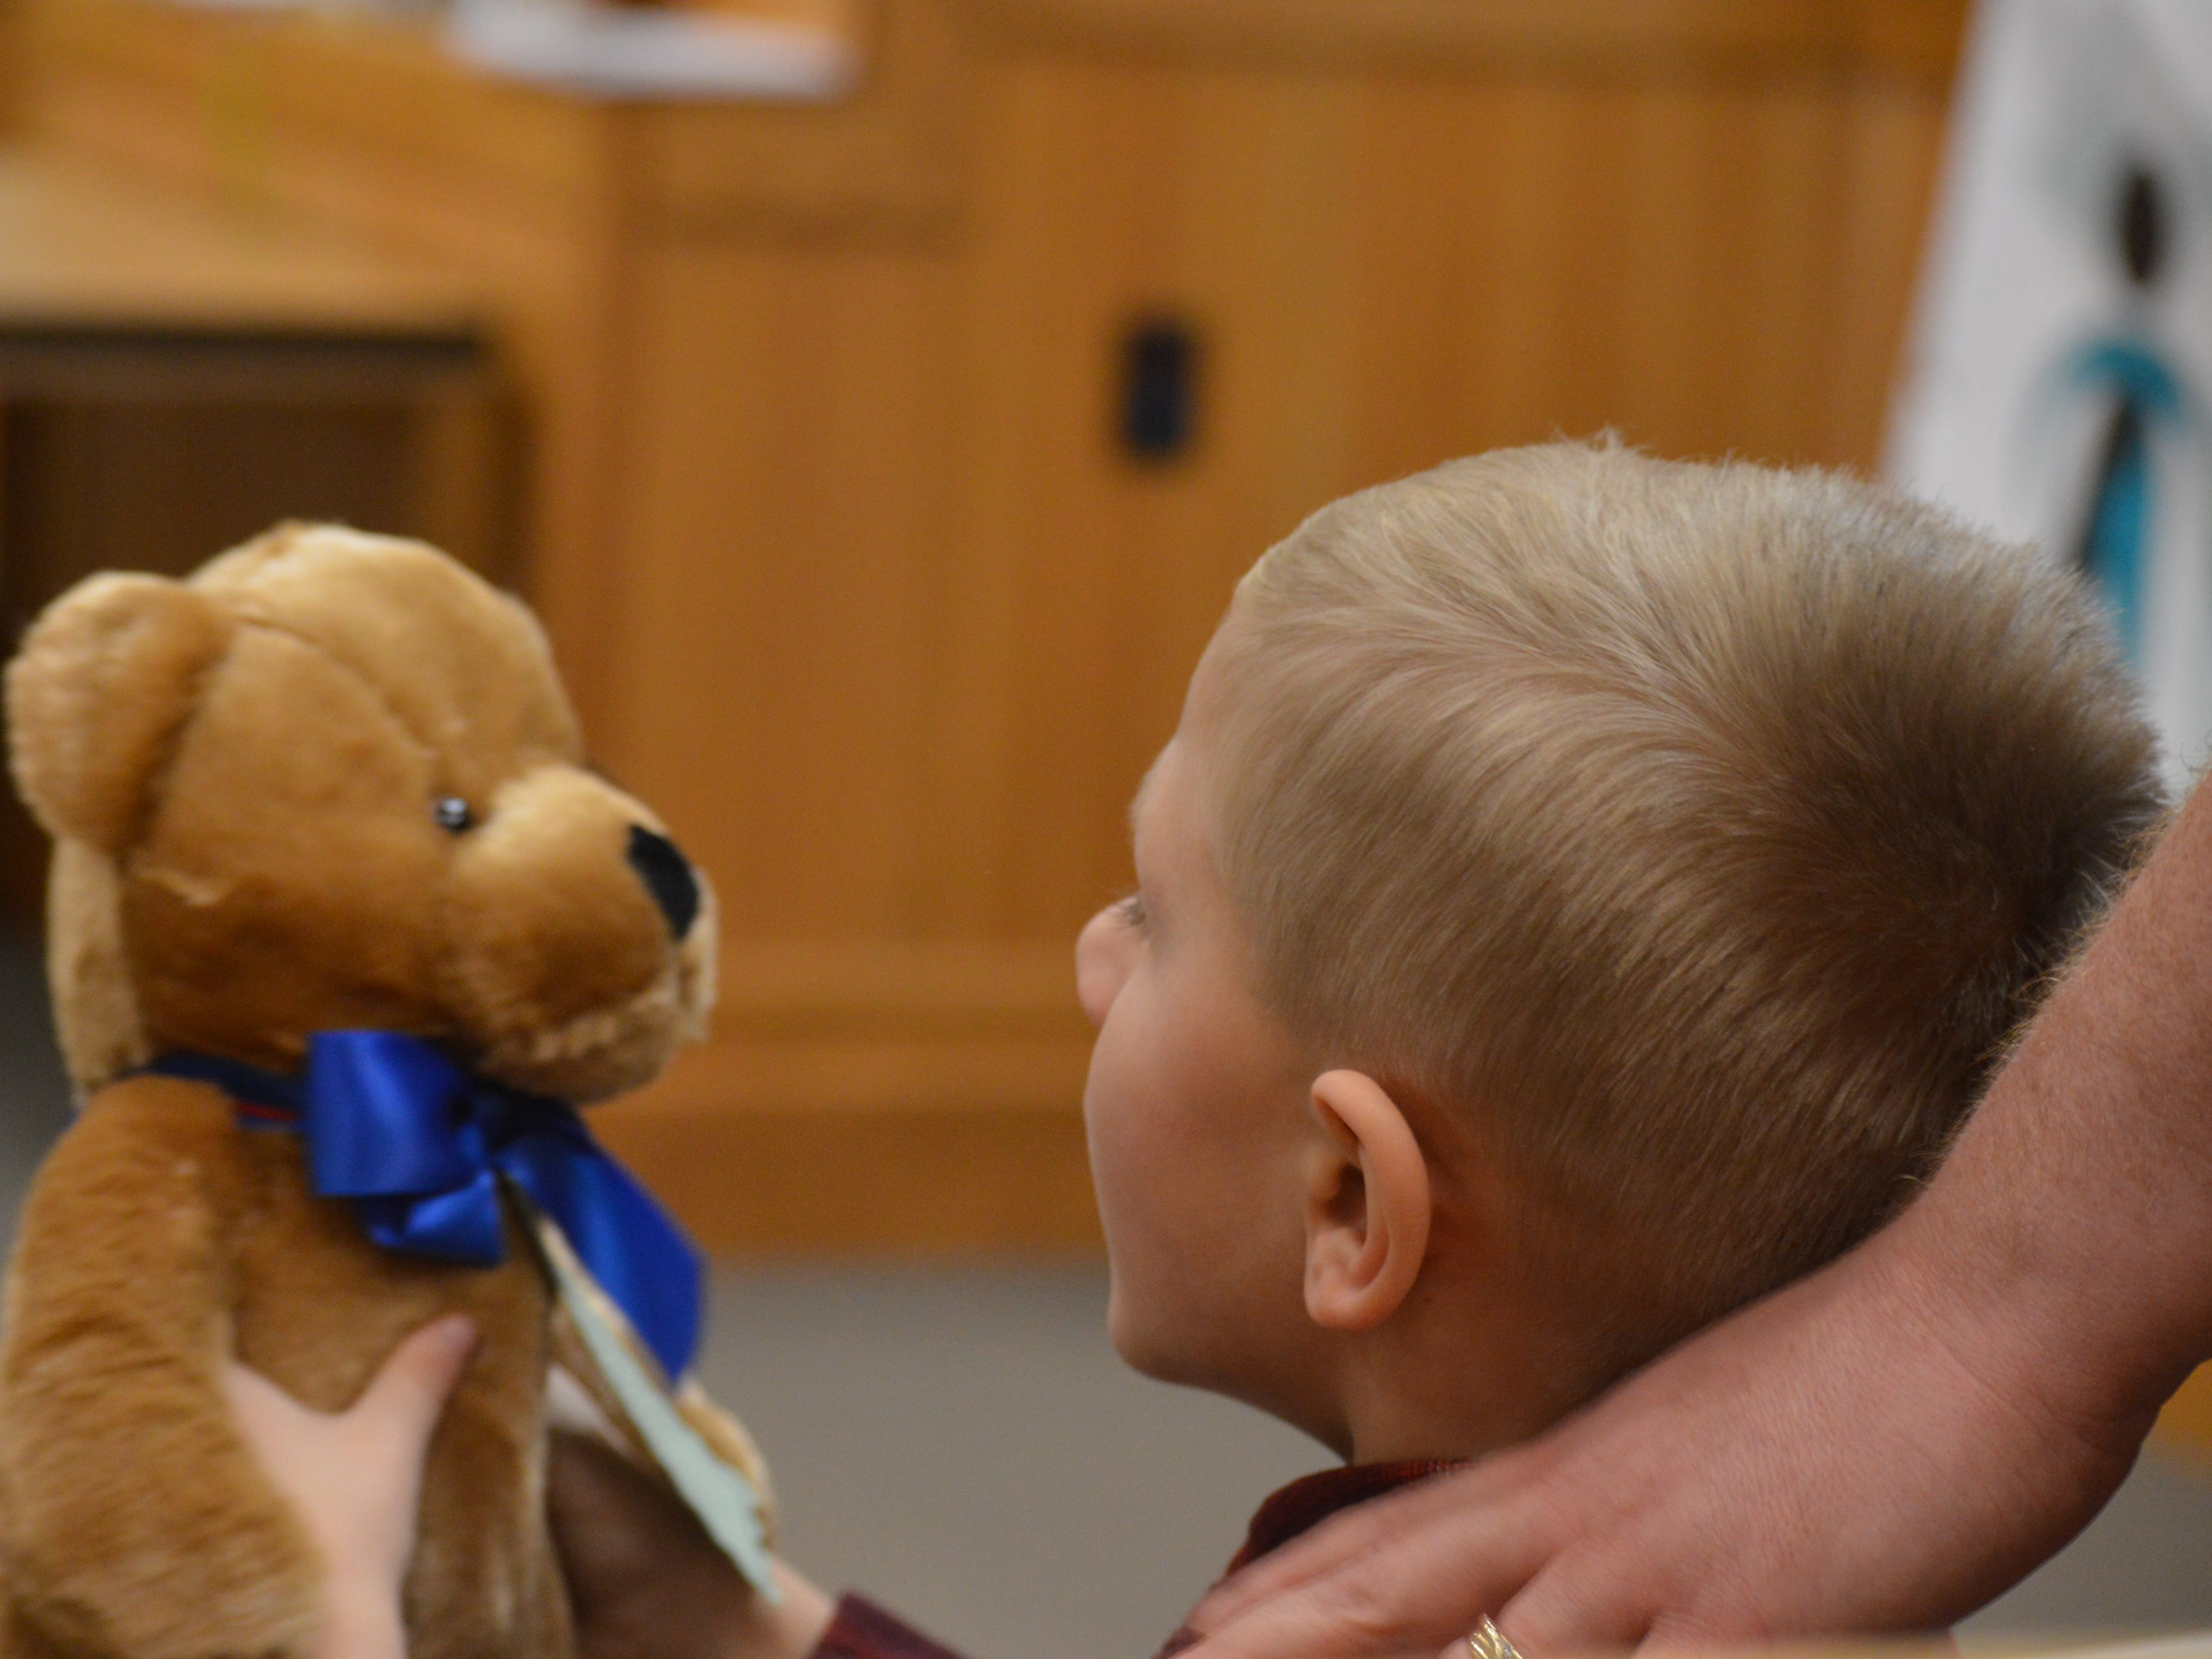 Jayden Poag looks at the teddy bear given to him by Livingston County Chief Judge Miriam Cavanaugh after his adoption was finalized Nov. 20, 2018.